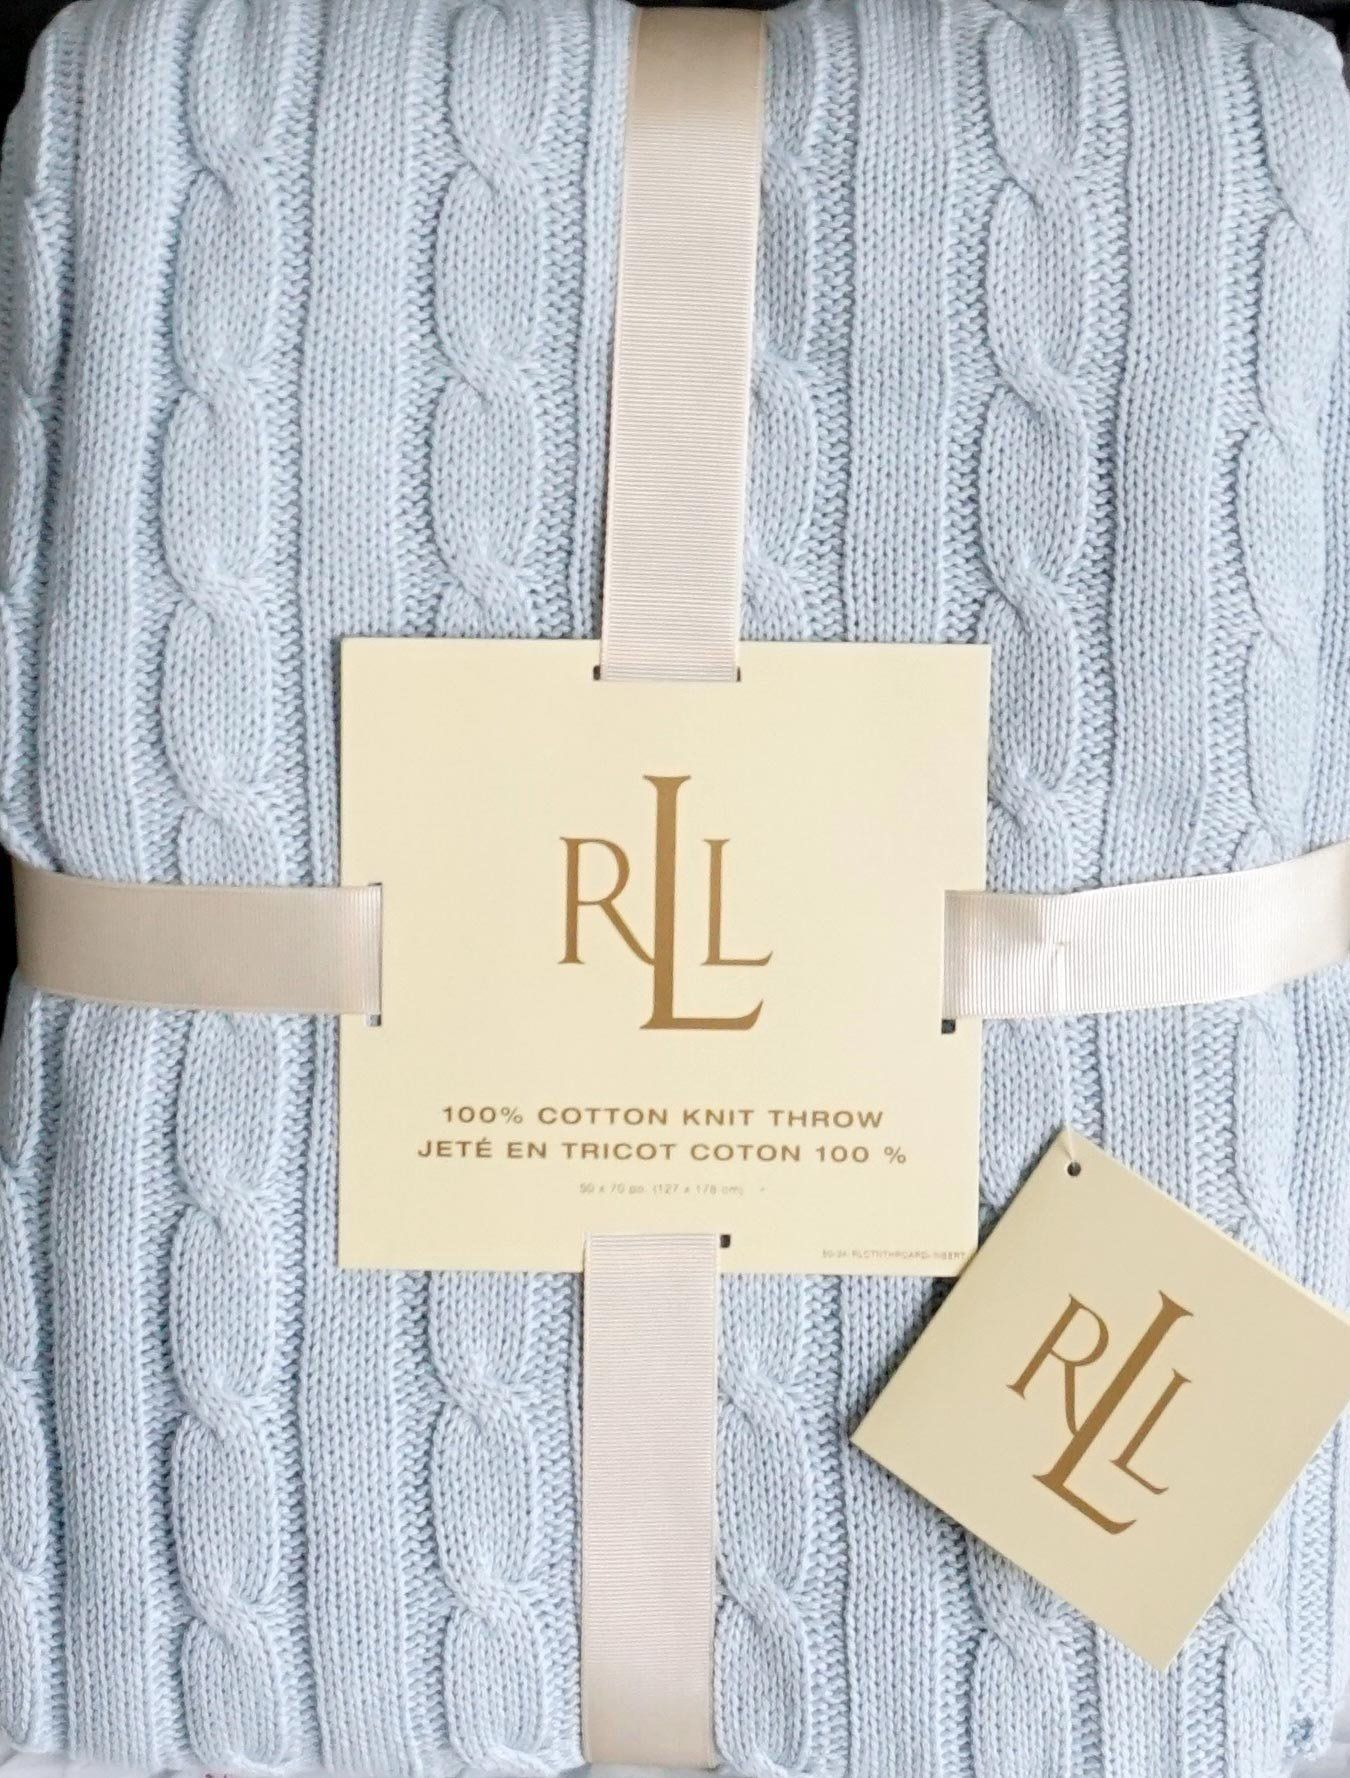 Ralph Lauren Cotton Cable Knit Throw Blanket 50 Inch x 70 Inch